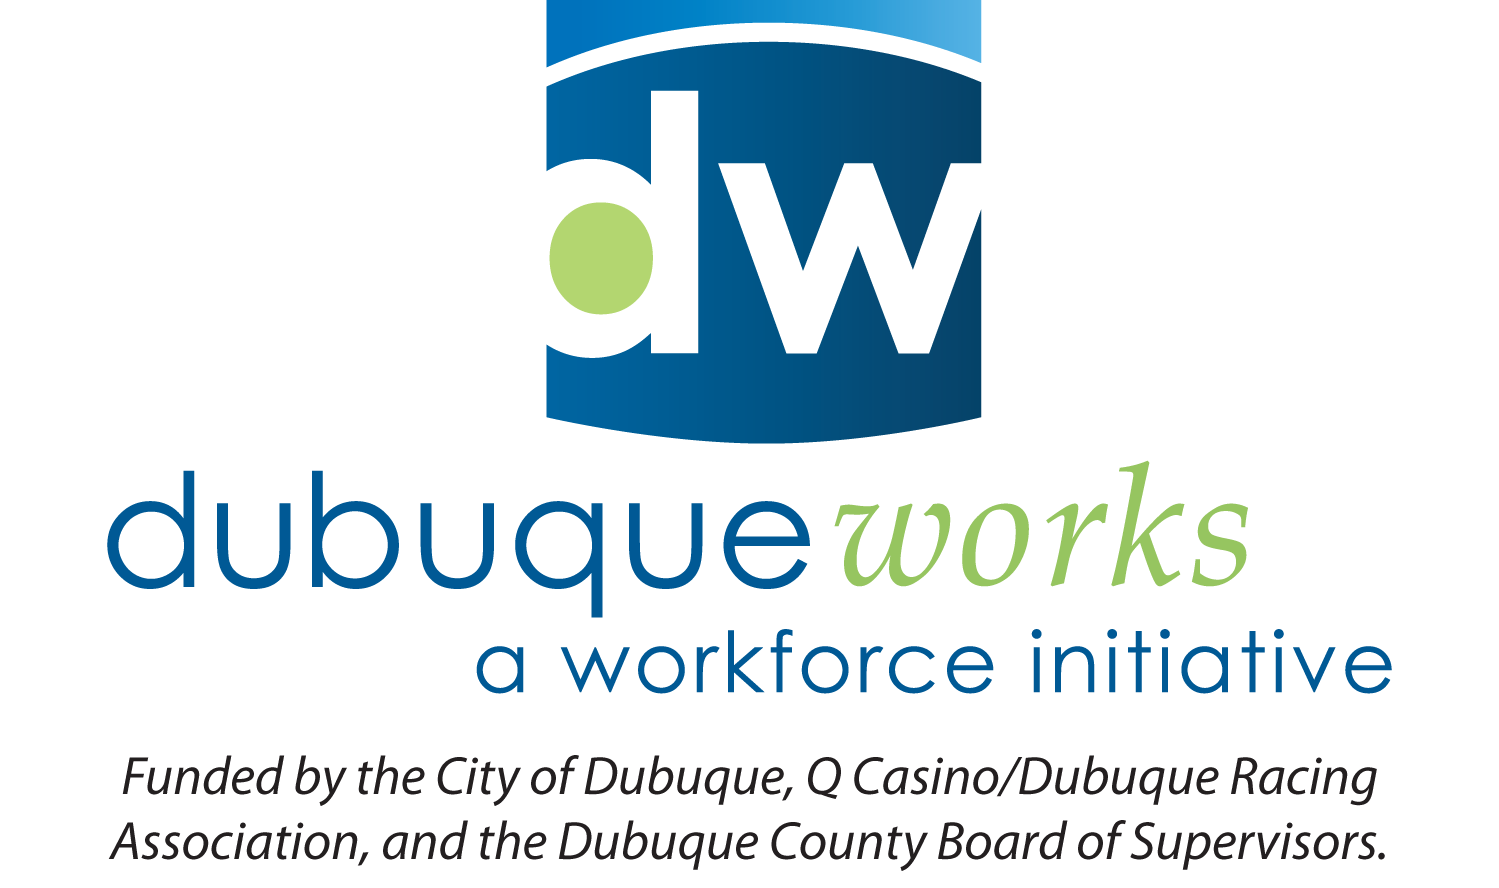 Dubuque Works